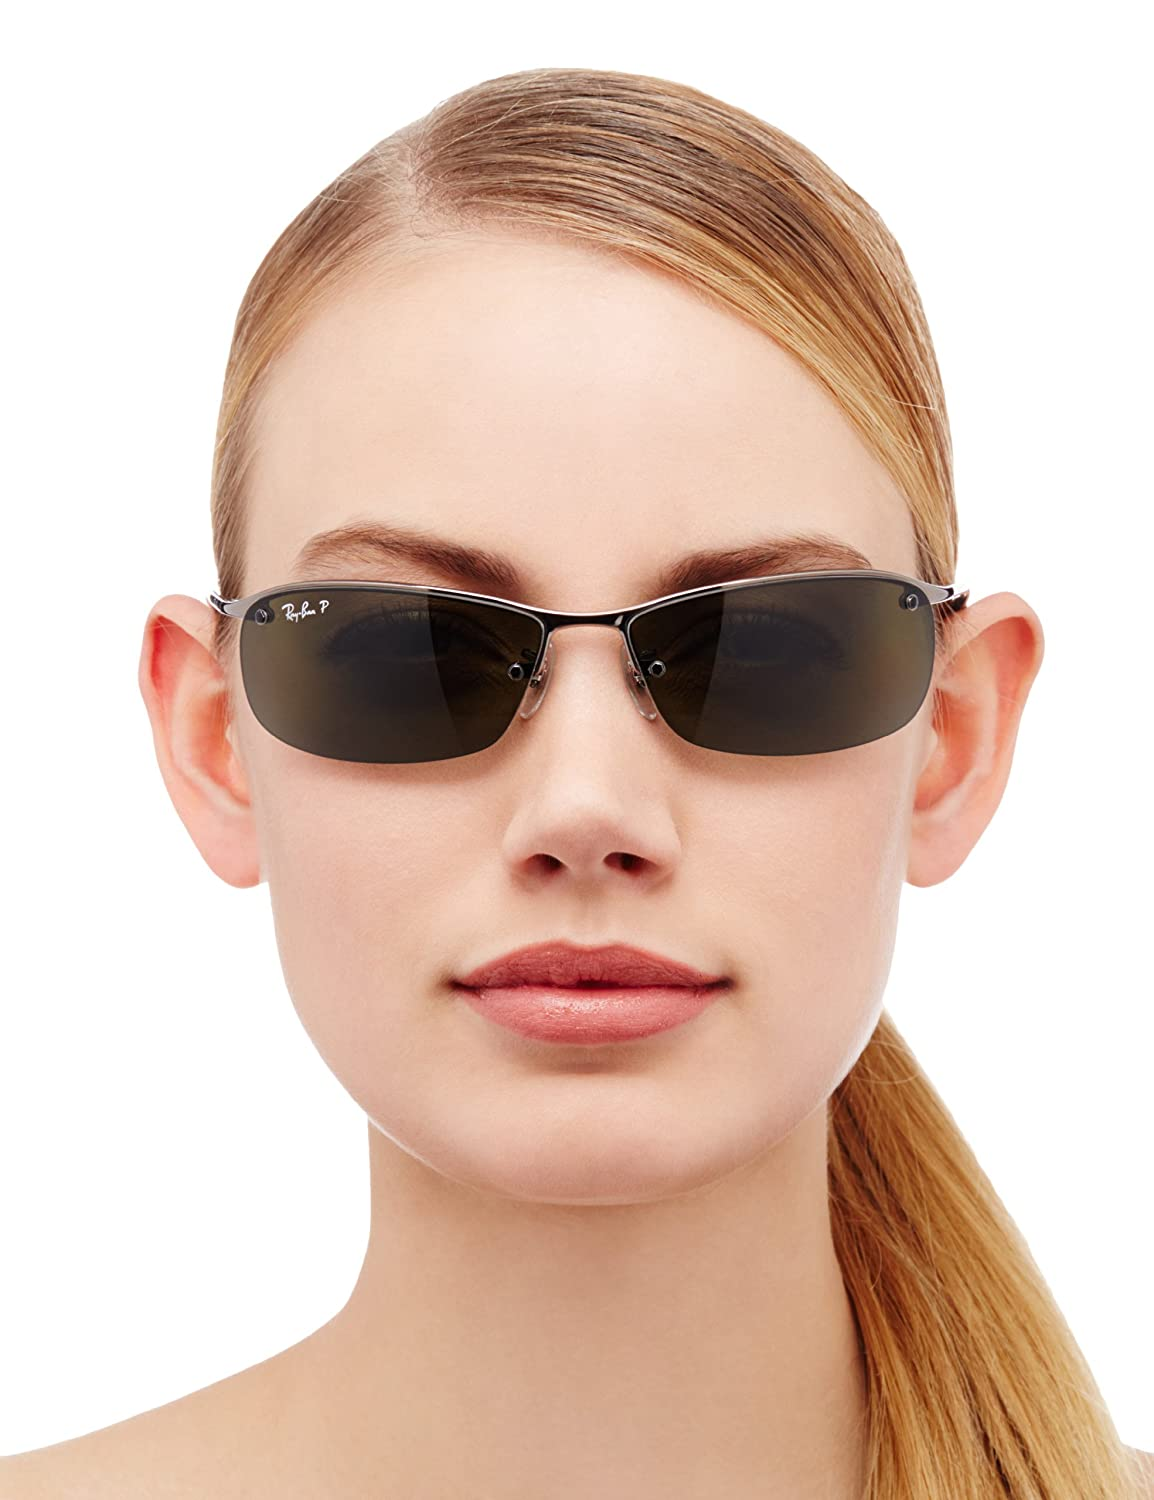 Ray Ban RB 3183 63 004/9A Rb 3183 Sport Sunglasses 63, Gunmetal: Ray Ban:  Amazon.co.uk: Clothing